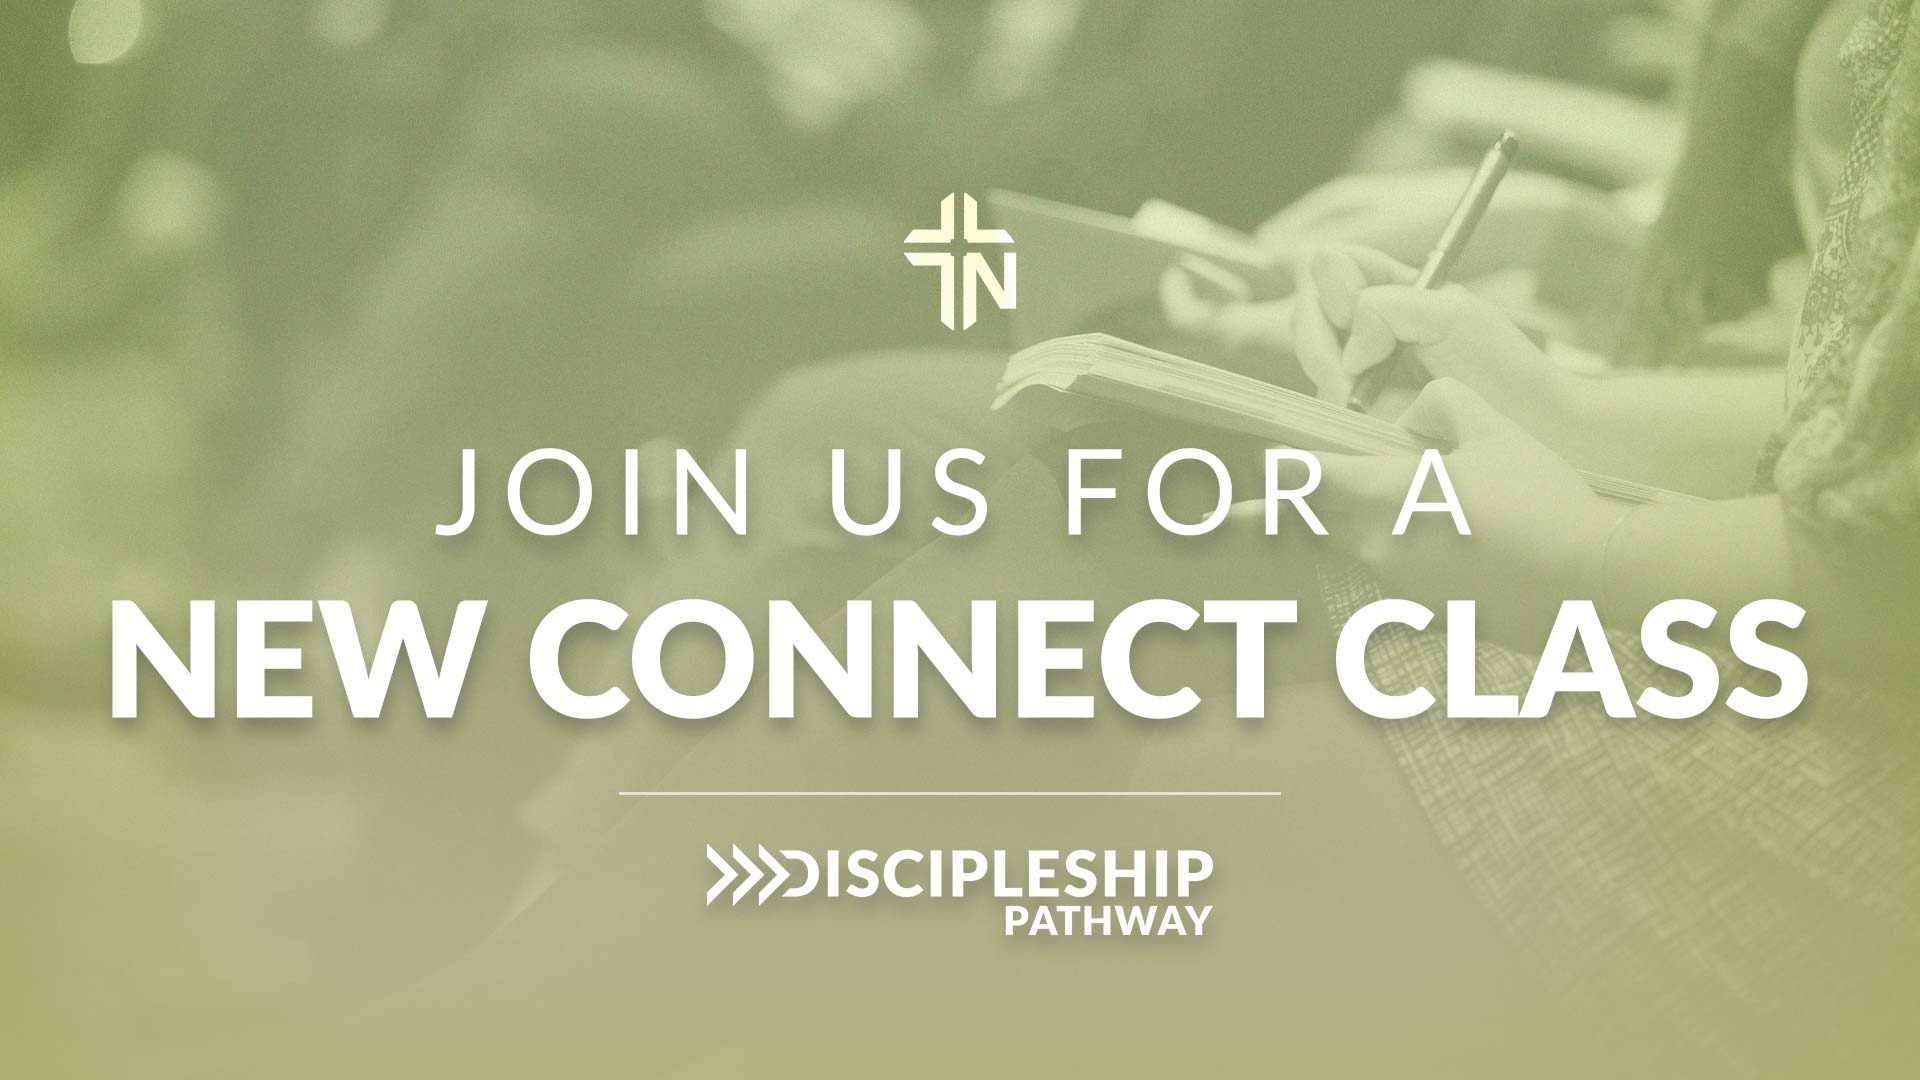 New Connect Class - Discipleship Pathway - NCC 101